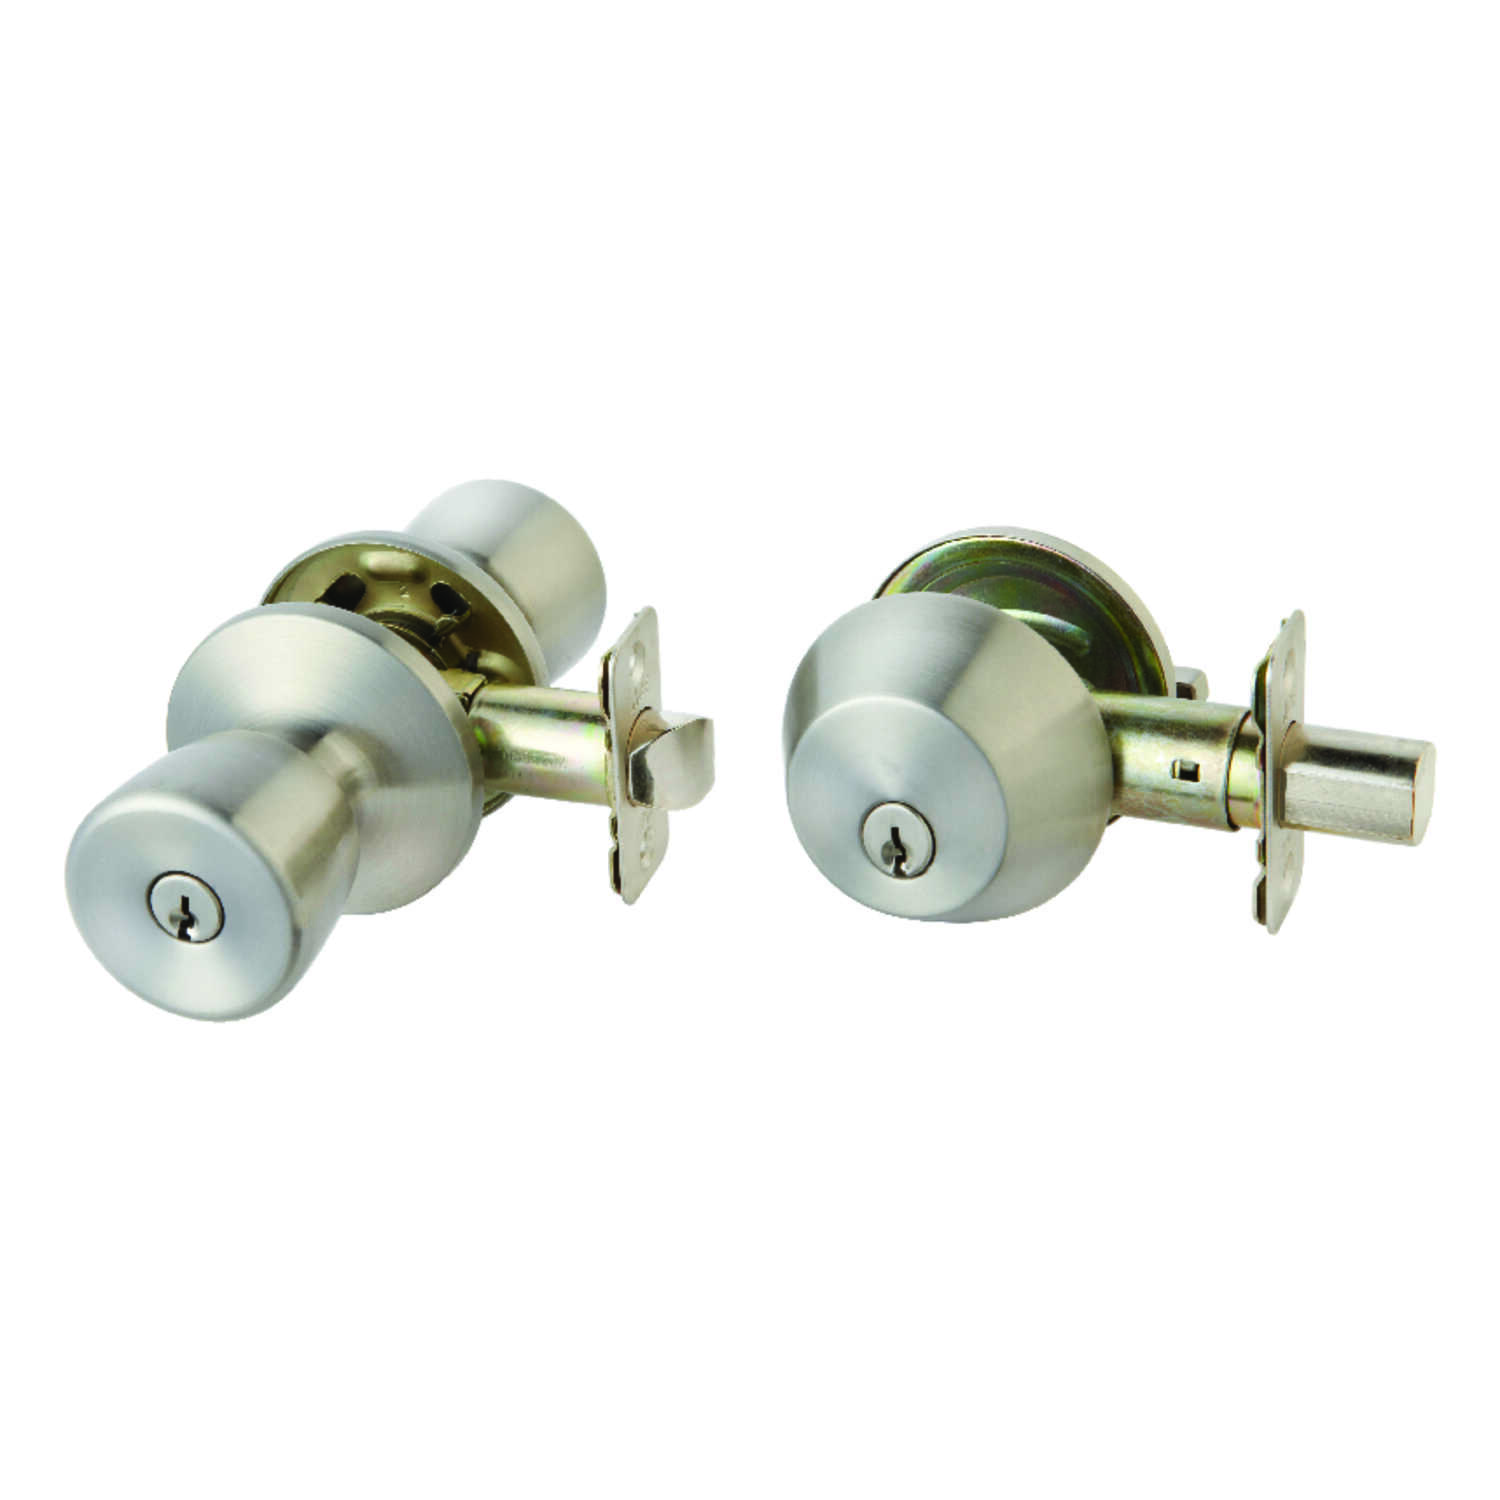 Ace  Tulip  Satin  Stainless Steel  Entry Lever and Deadbolt Set  ANSI/BHMA Grade 3  1-3/4 in.